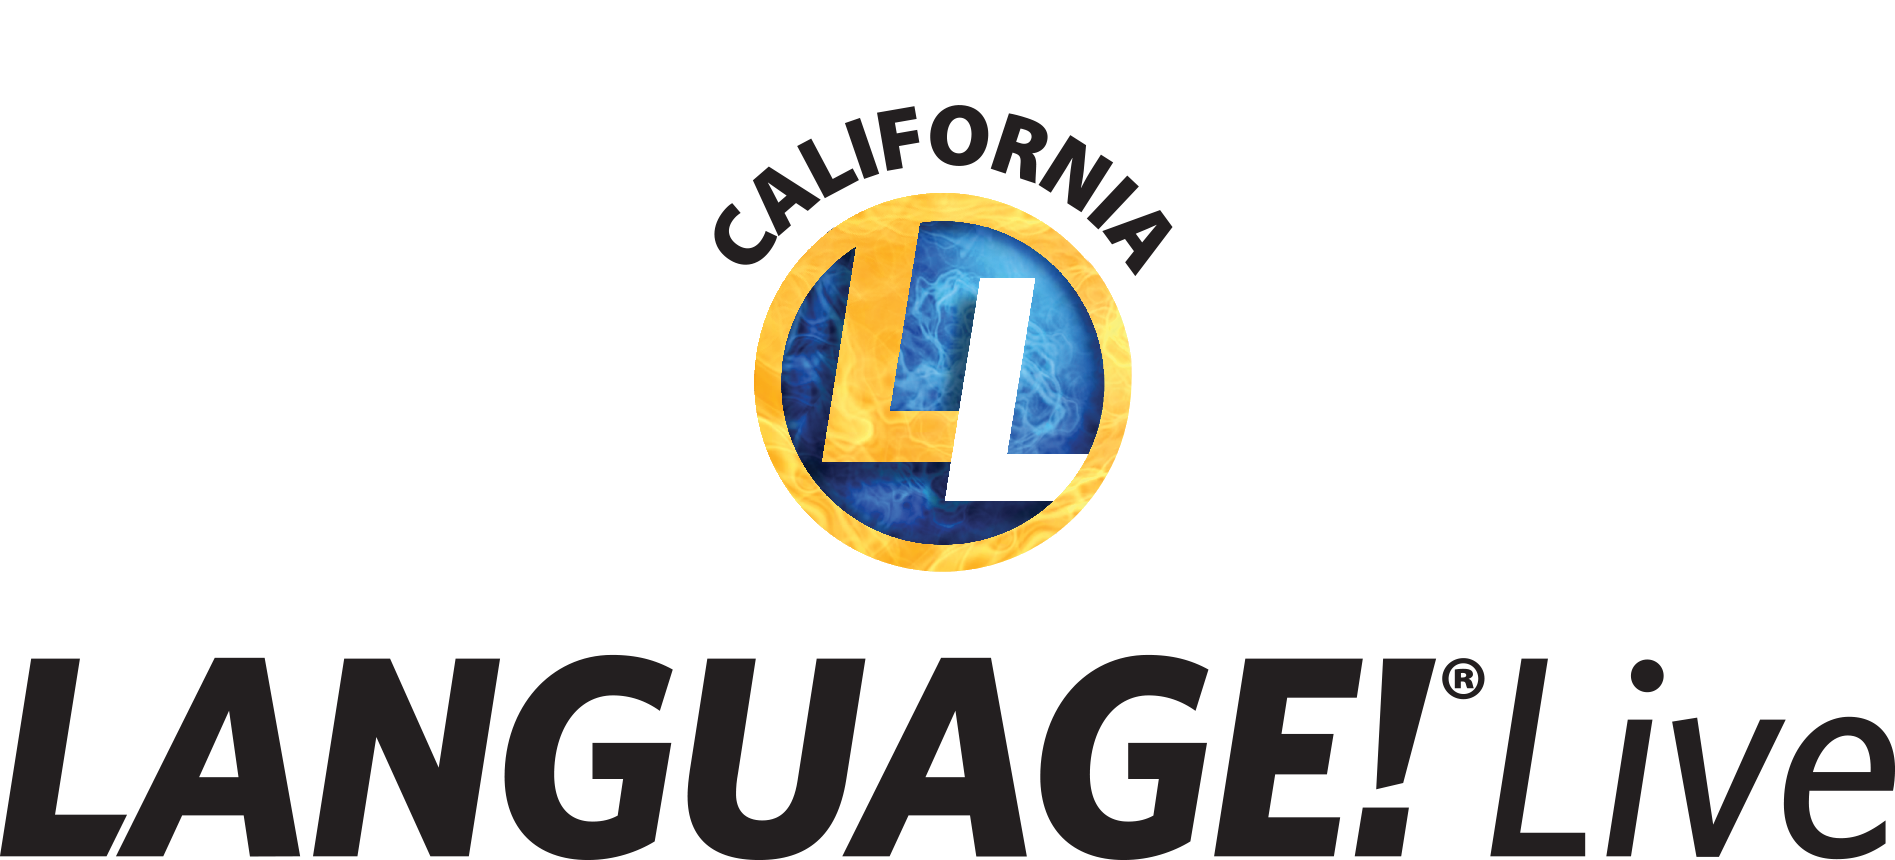 LANGUAGE! Live California by Voyager Sopris Learning